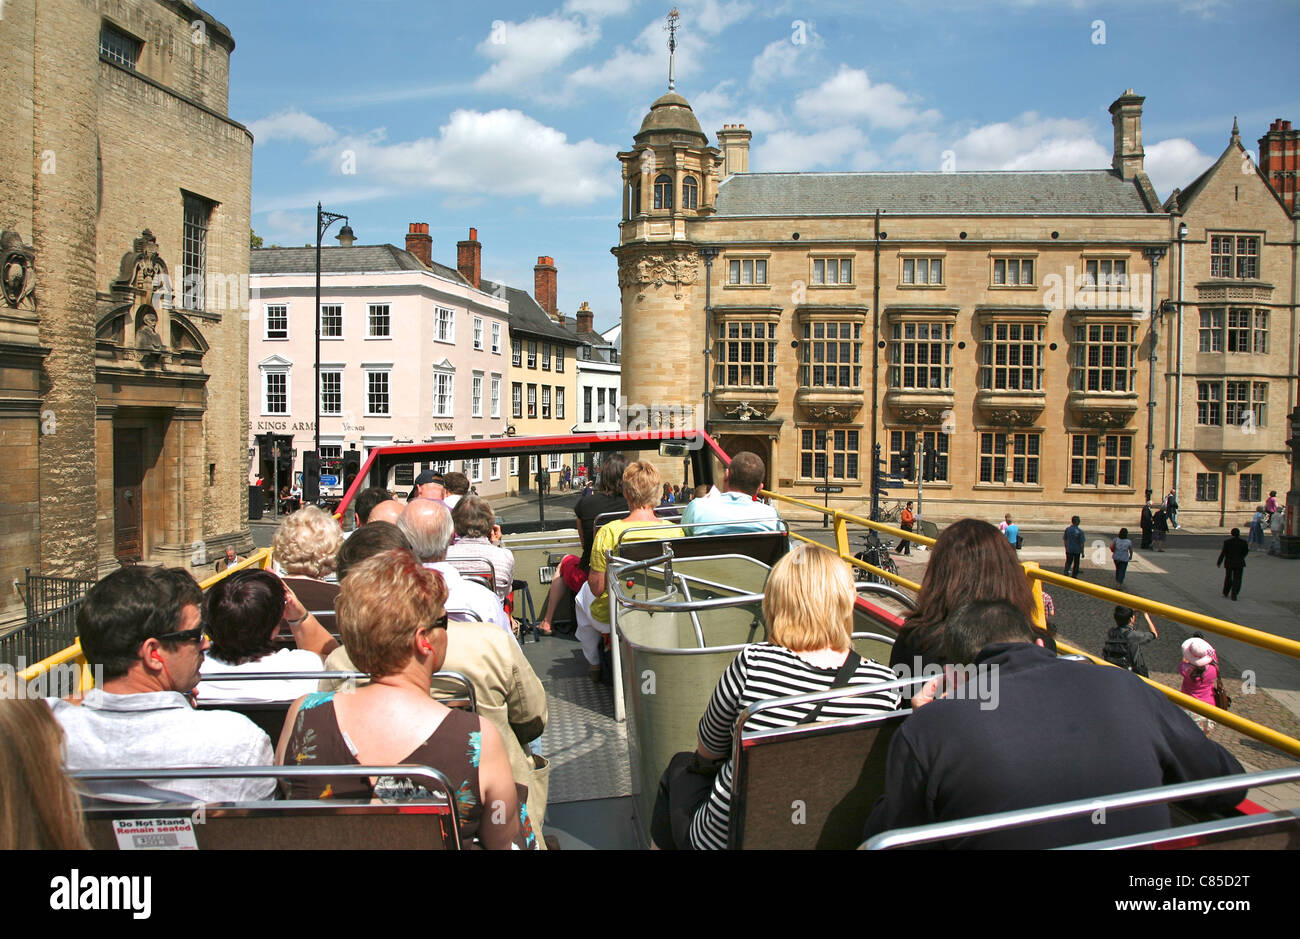 View from an open topped bus guided tour of central Oxford - Stock Image